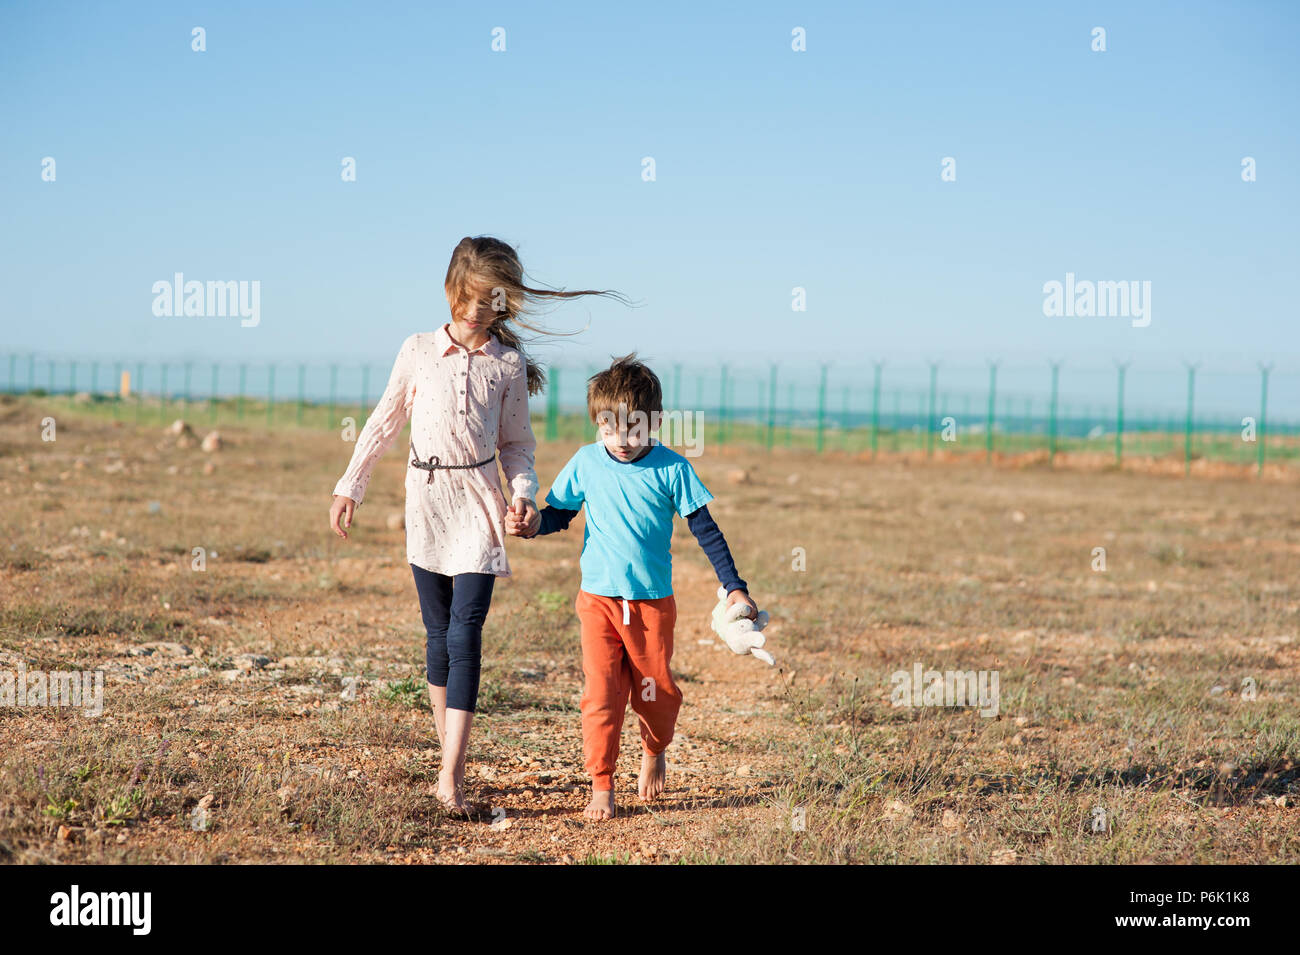 two kids migrants walking in desert shoeless with plush toy along state border fencing - Stock Image